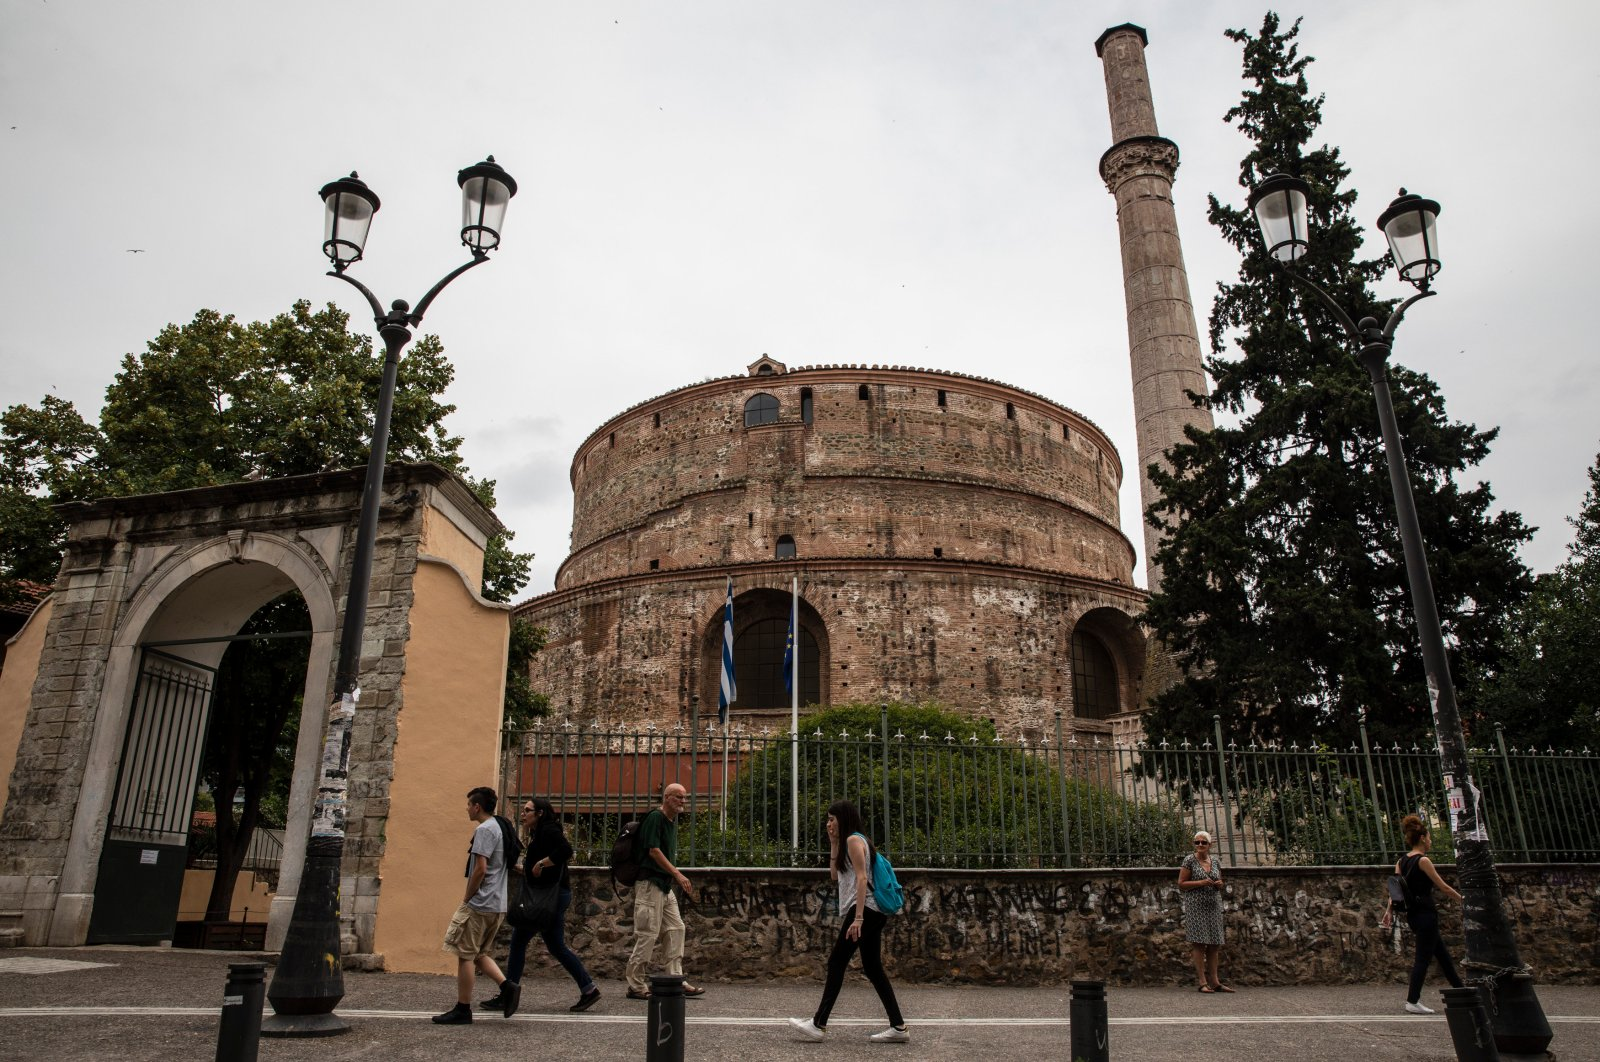 A view of the Sultan Hortac Mosque in Greece's Thessaloniki, which is not open to worship despite its good condition. (DHA)